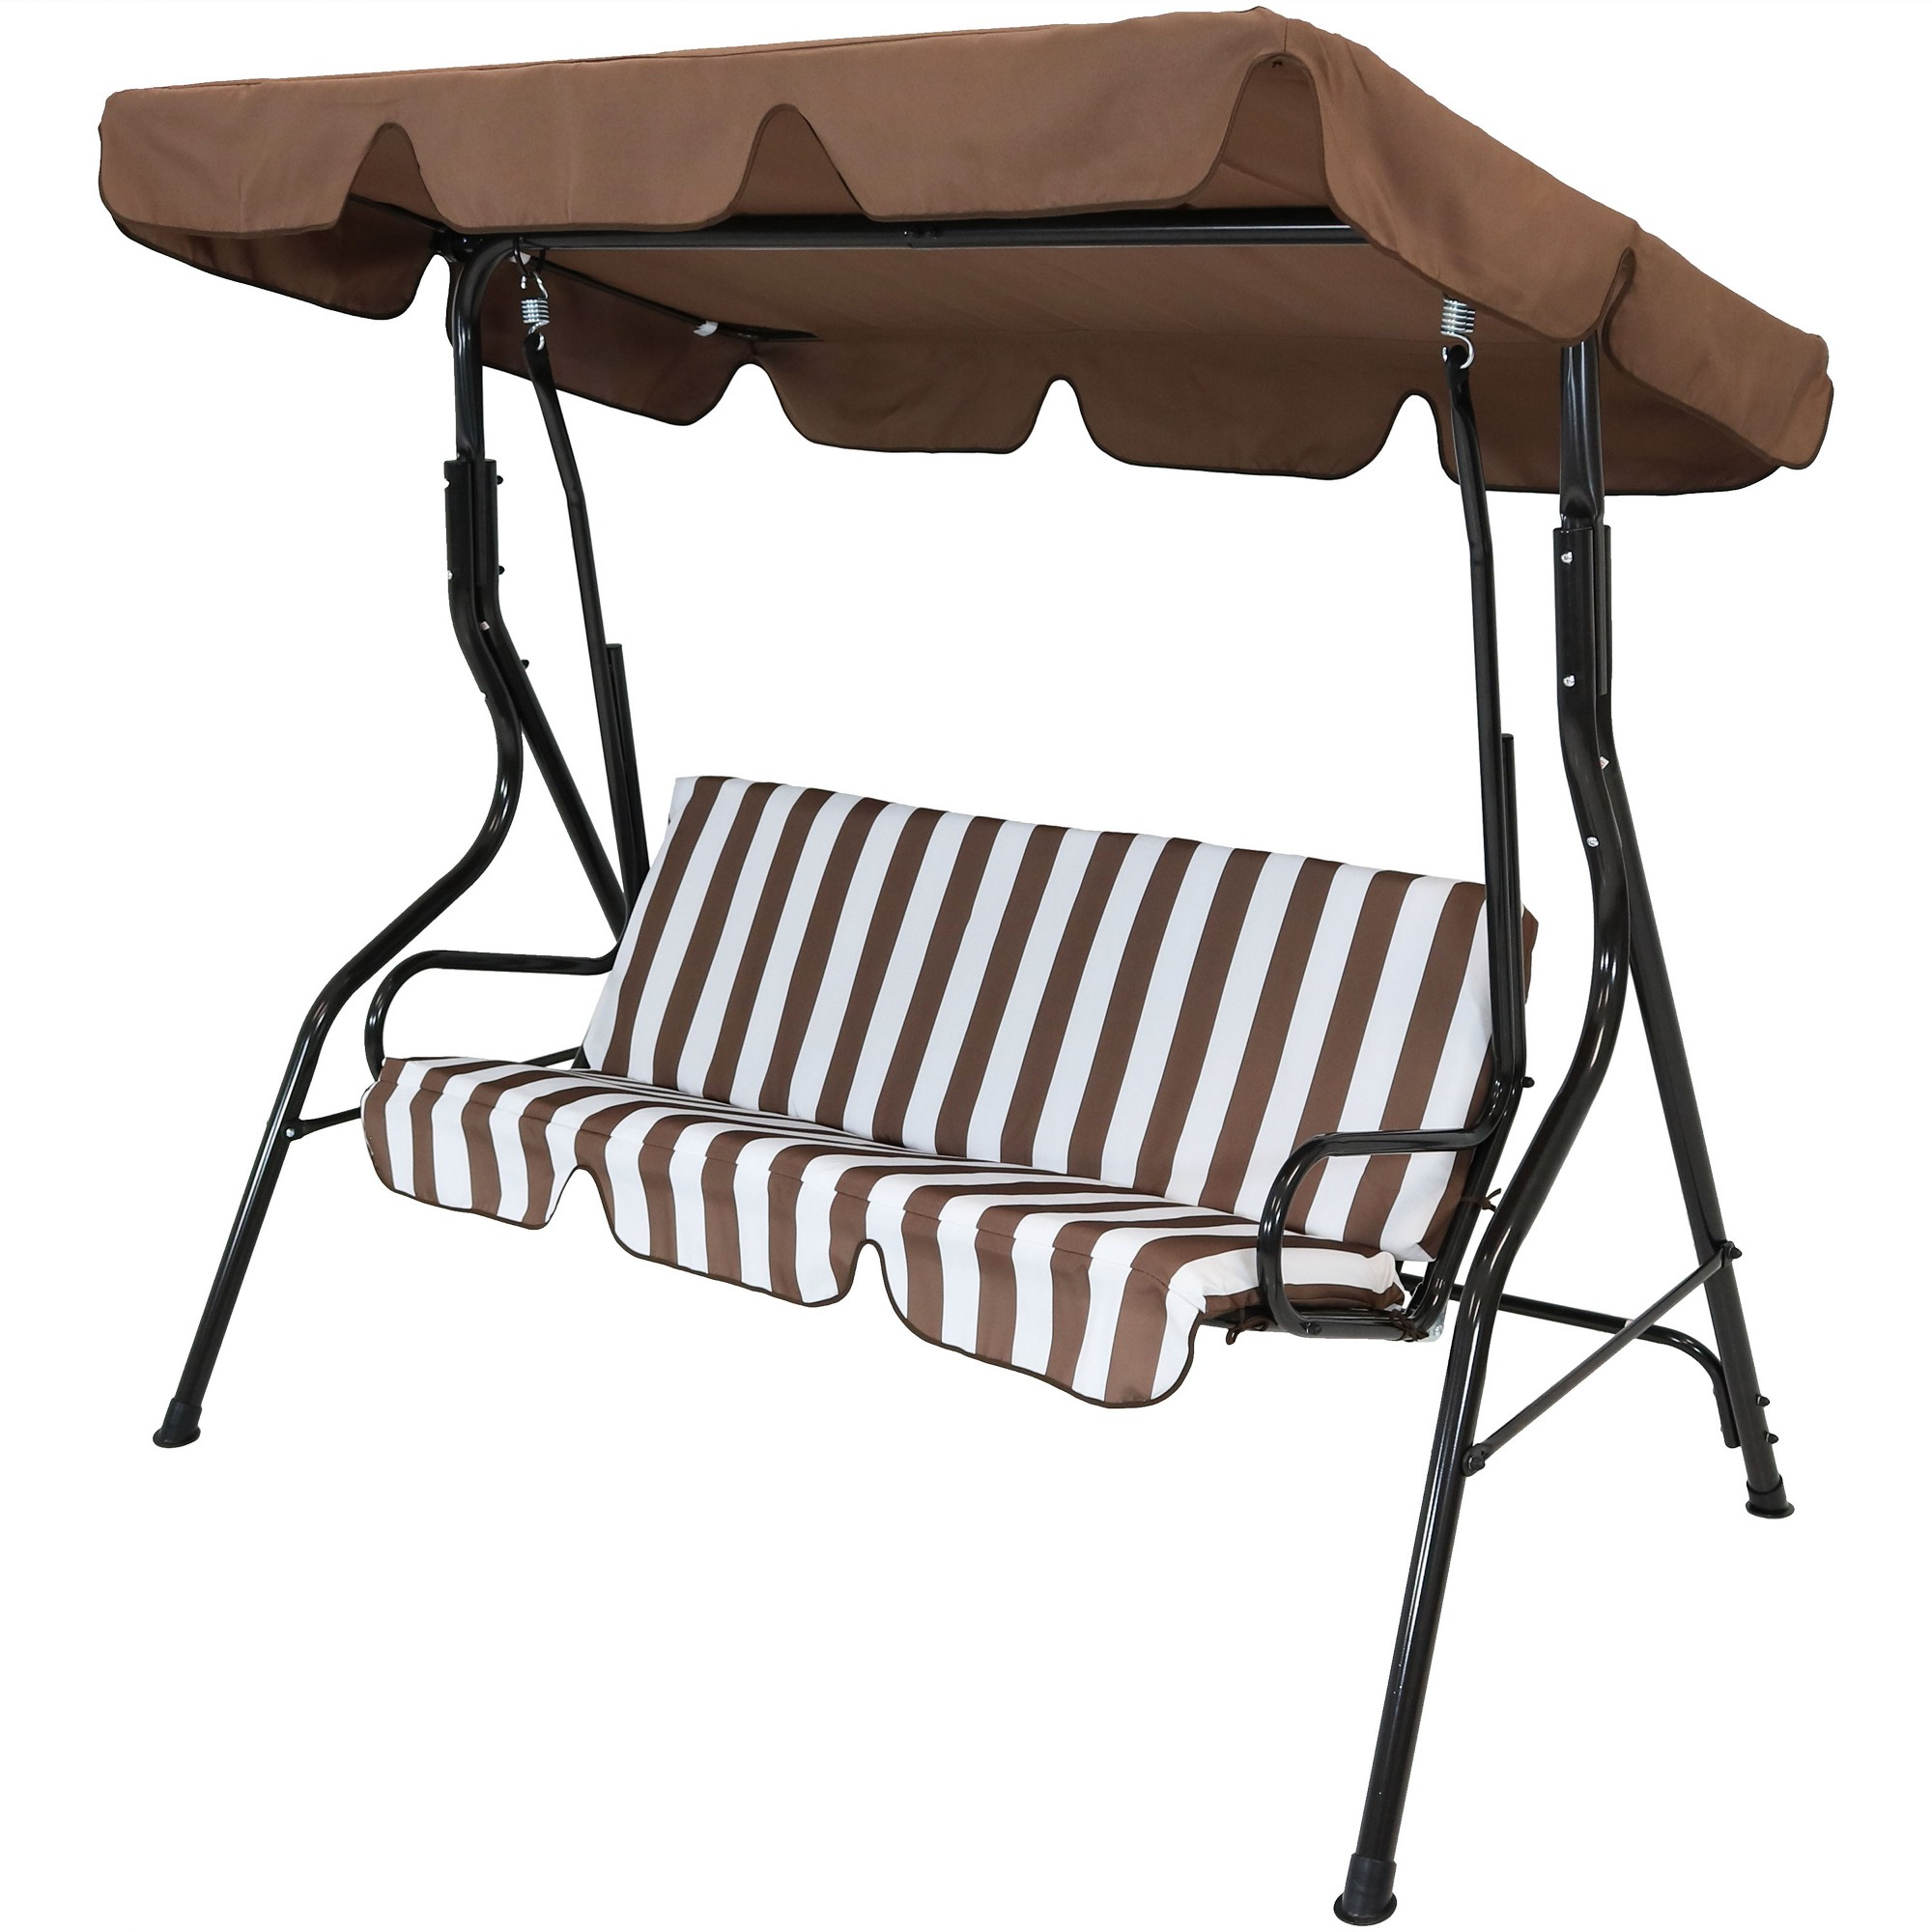 2 Person Black Wood Outdoor Swings Regarding Well Liked 2 Person Steel Frame Porch Swing With Adjustable Canopy (View 24 of 25)